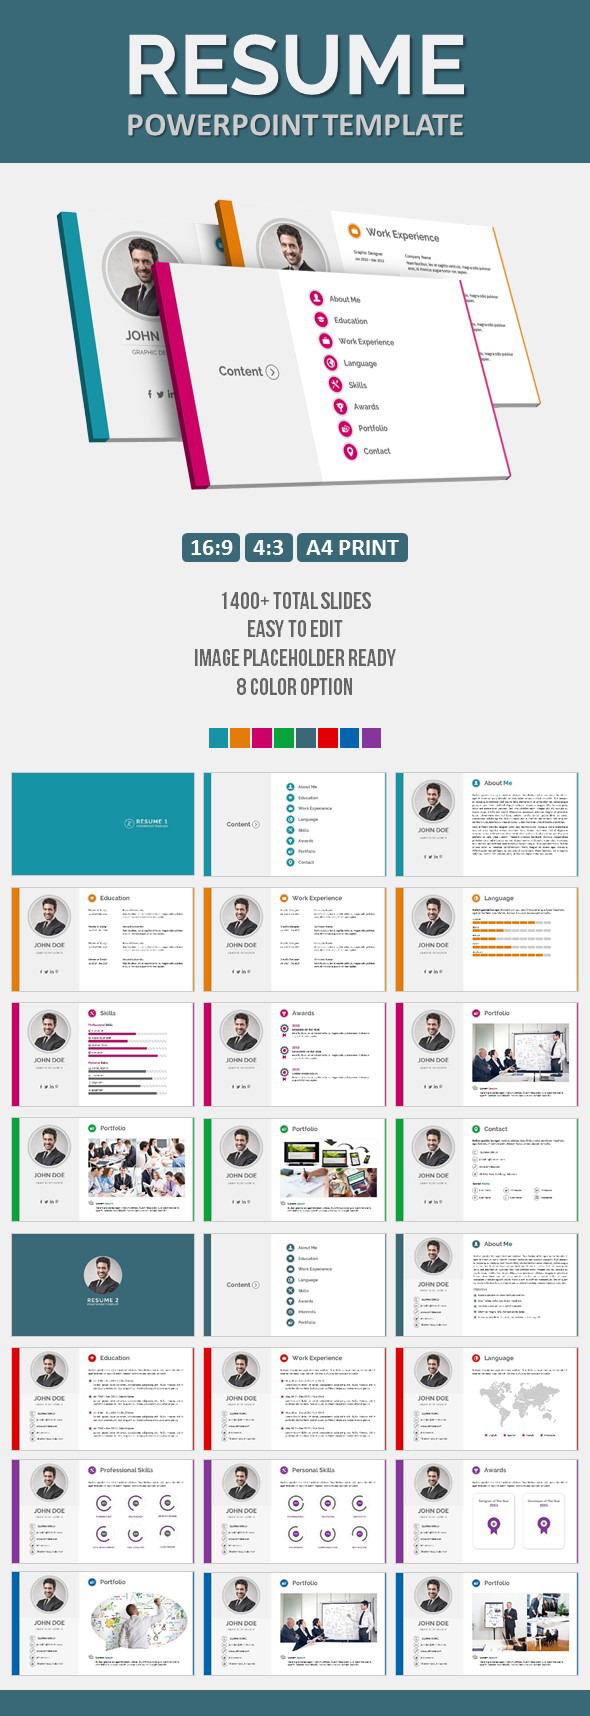 Resume PowerPoint Template By Pptx GraphicRiver